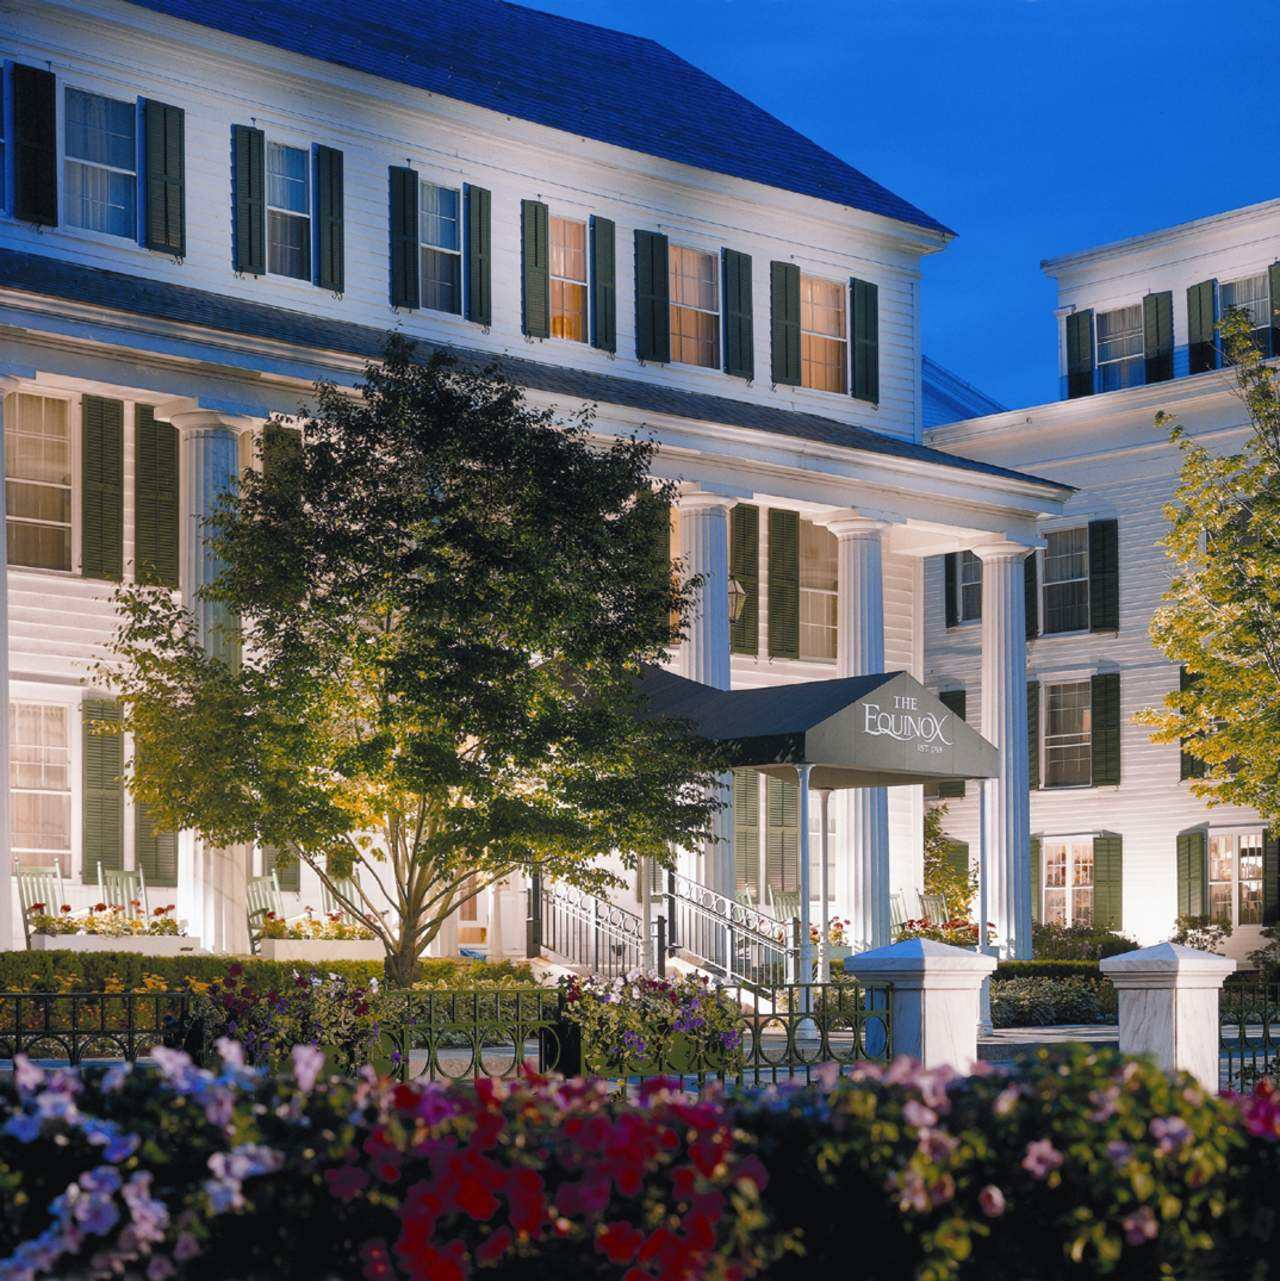 Equinox Hotel And Spa Vermont